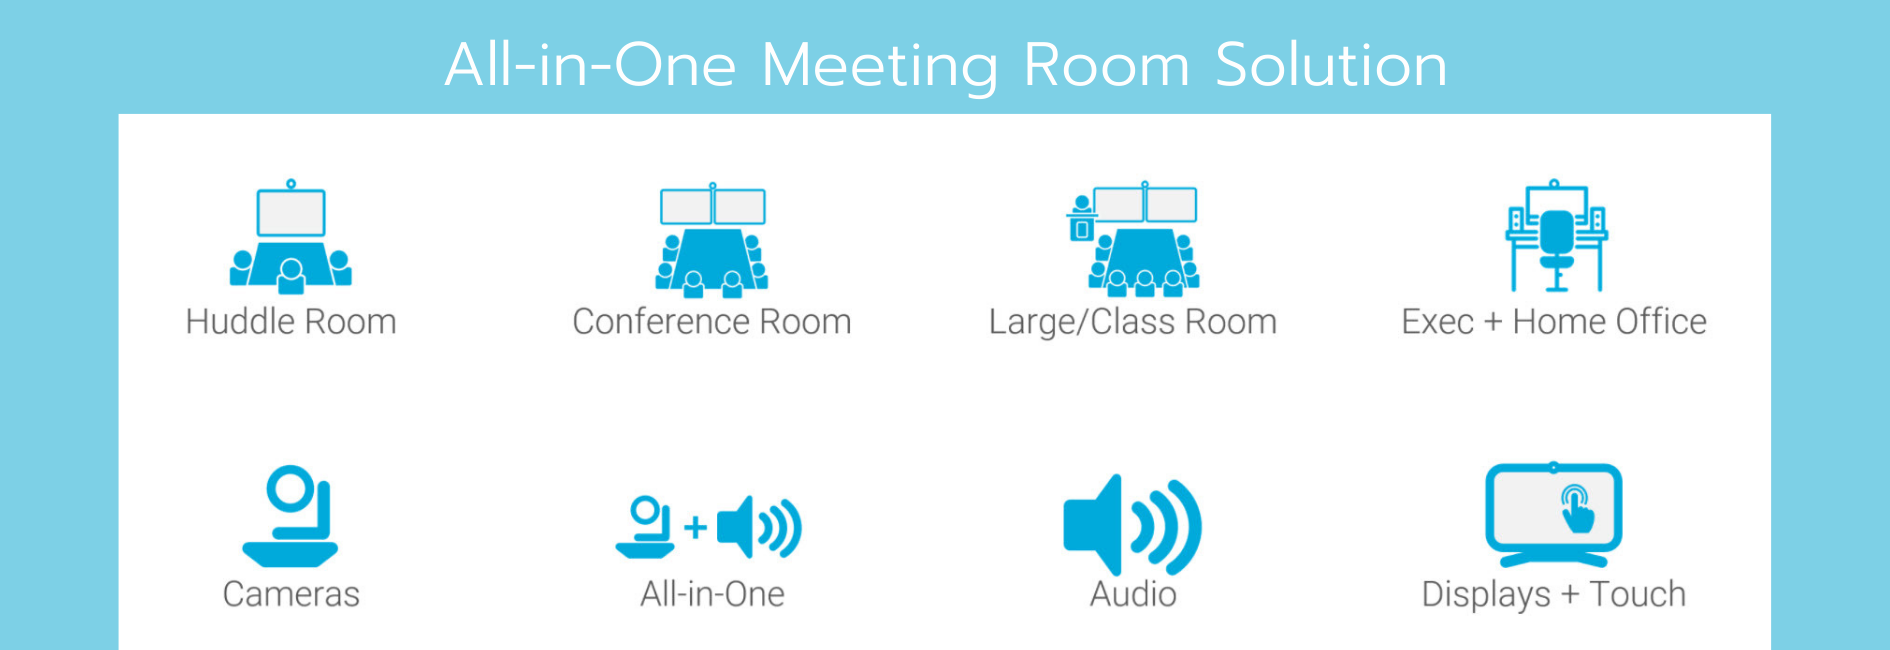 Video Conference - All in one meeting room solution